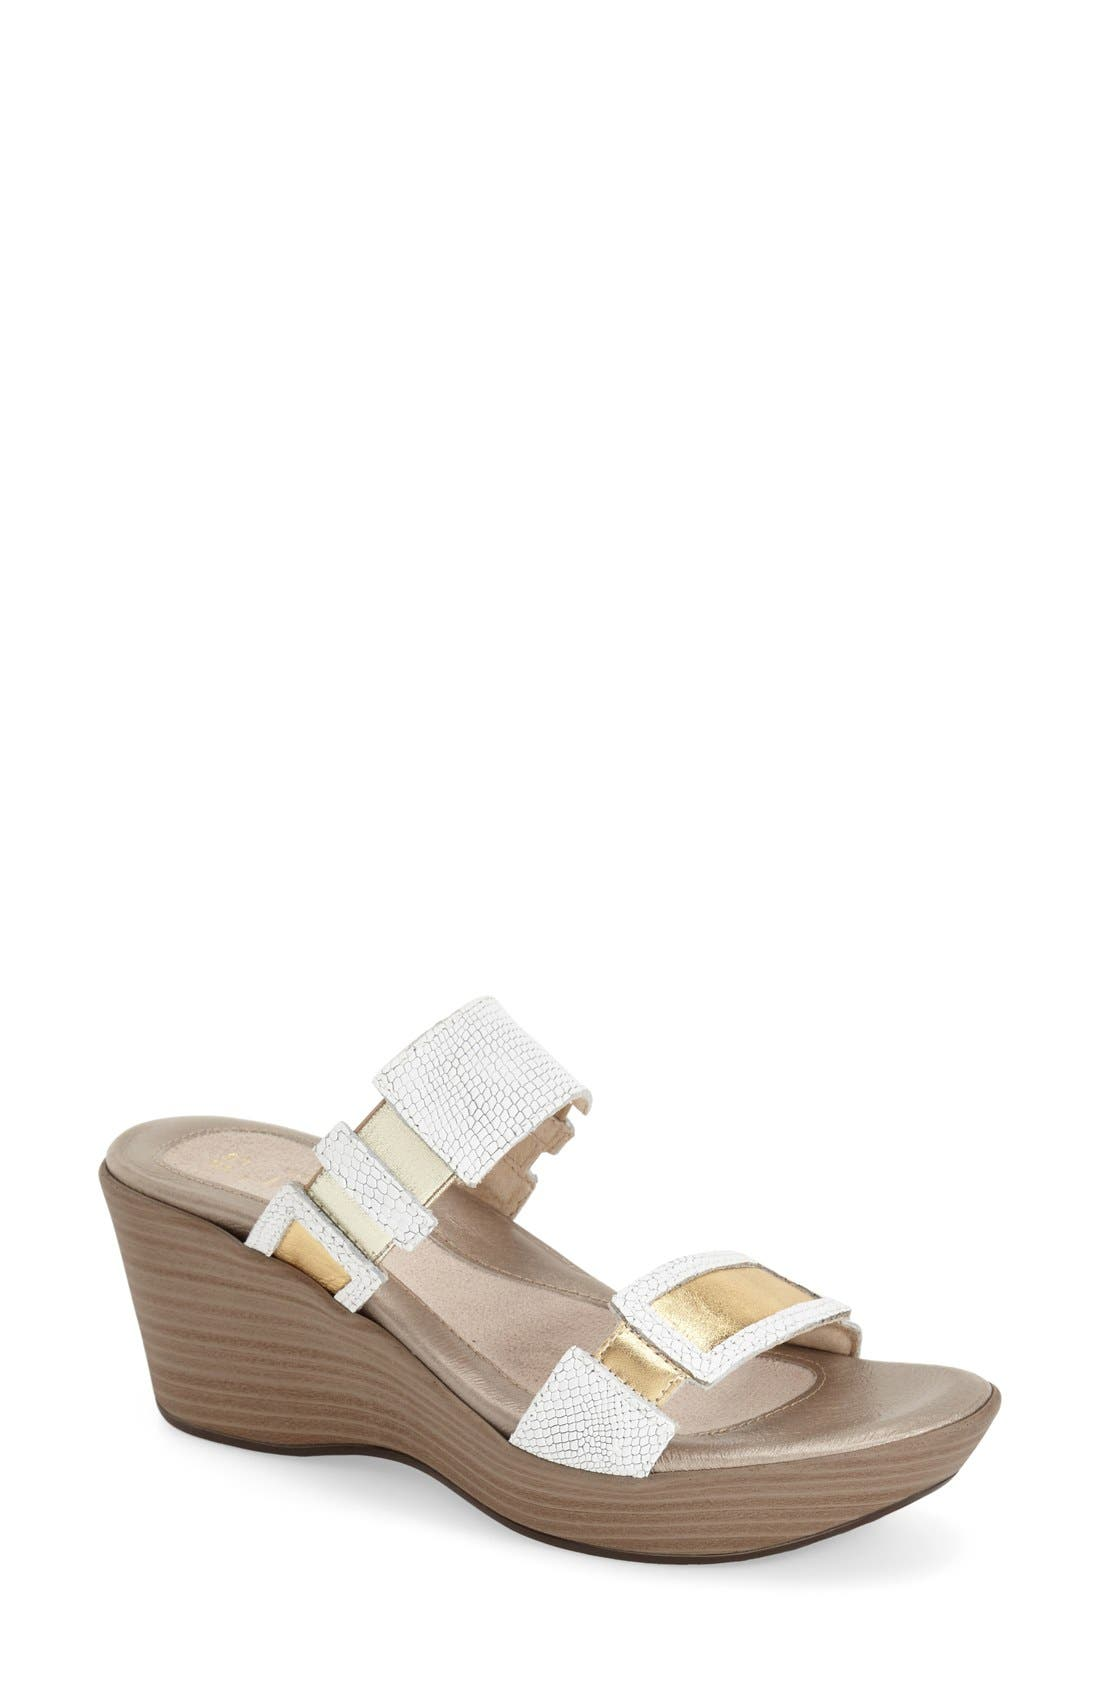 Naot 'Treasure' Sandal